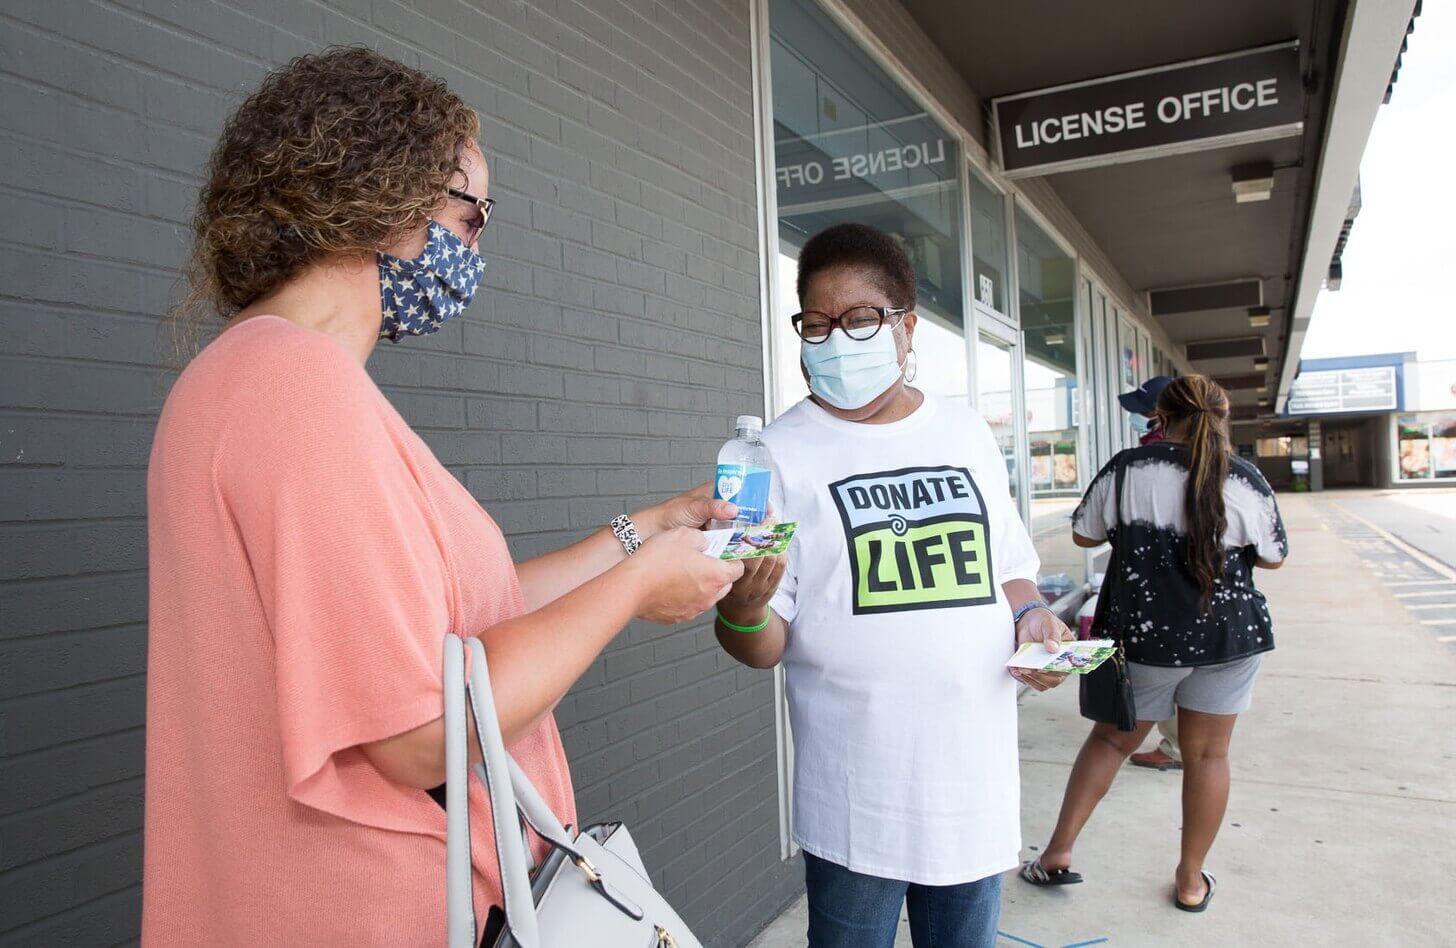 A Mid-America Transplant volunteer hands out water and information about organ and tissue donation at the Florissant DMV.